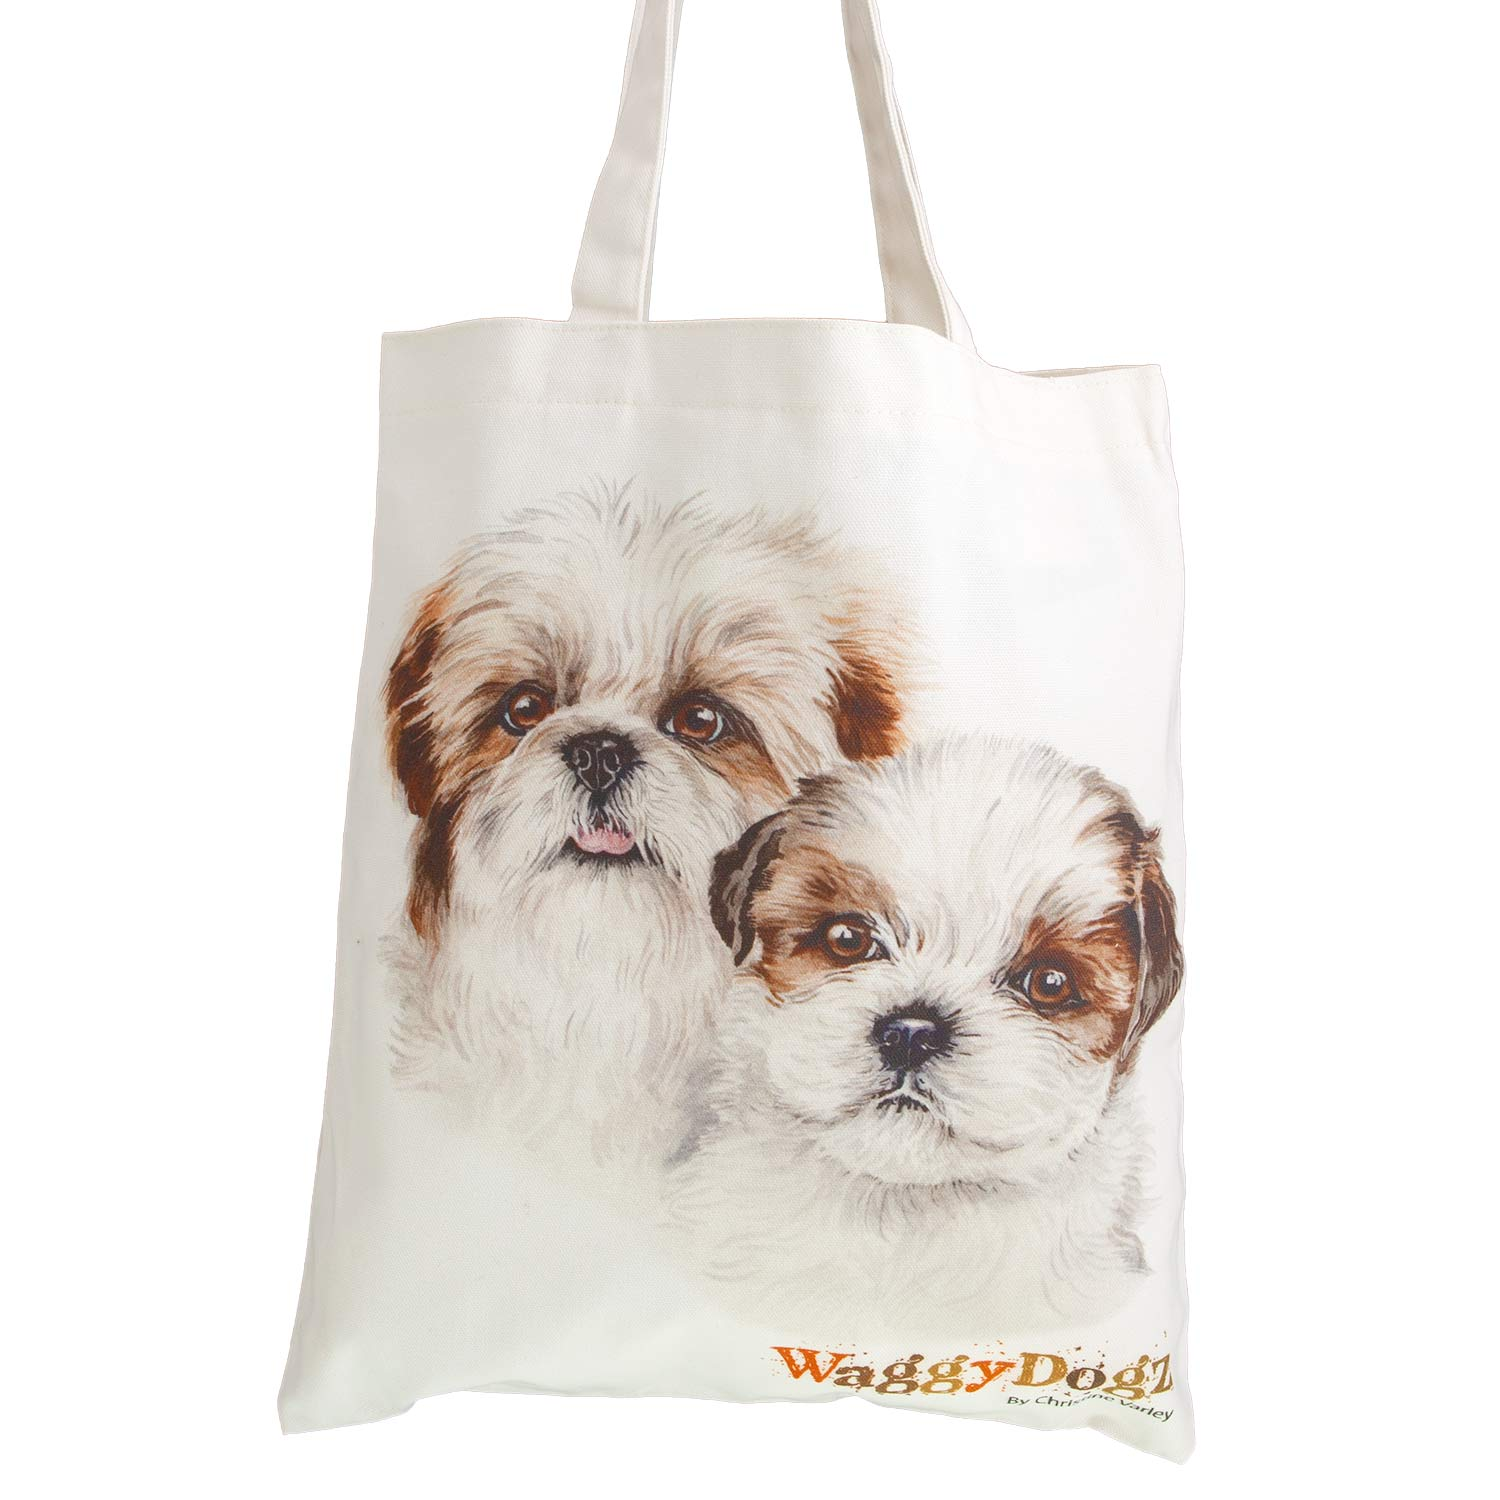 Dog Lover Gifts available at Dog Krazy Gifts. Shih Tzu puppies Bag, part of our Christine Varley collection – available at www.dogkrazygifts.co.uk A Double Sided organic Cotton Tote bag featuring a painting of a pair of Shih Tzu Dogs by Christine Varley, made and printed in Great Britain